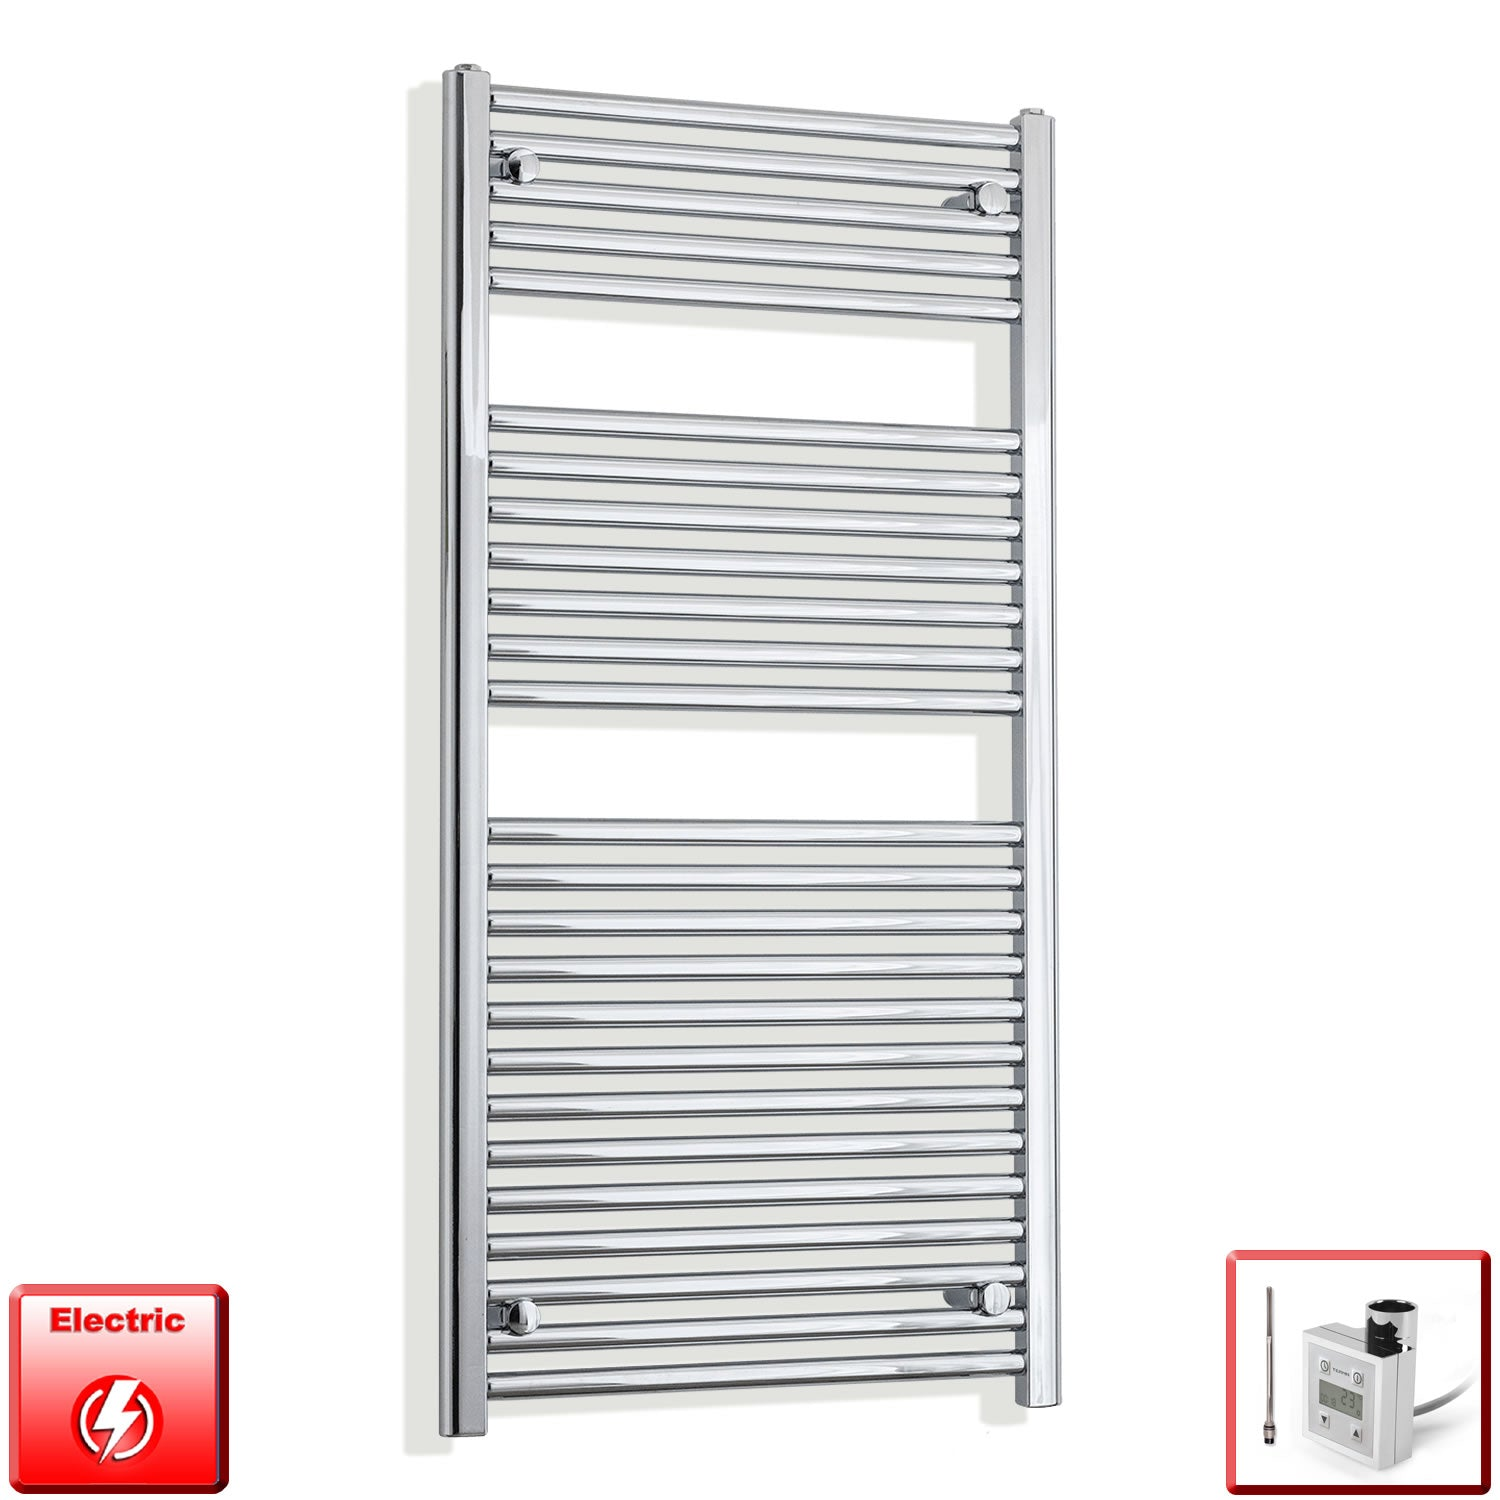 500mm Wide 1200mm High Flat Chrome Pre-Filled Electric Heated Towel Rail Radiator HTR,KTX-3 Thermostatic Element